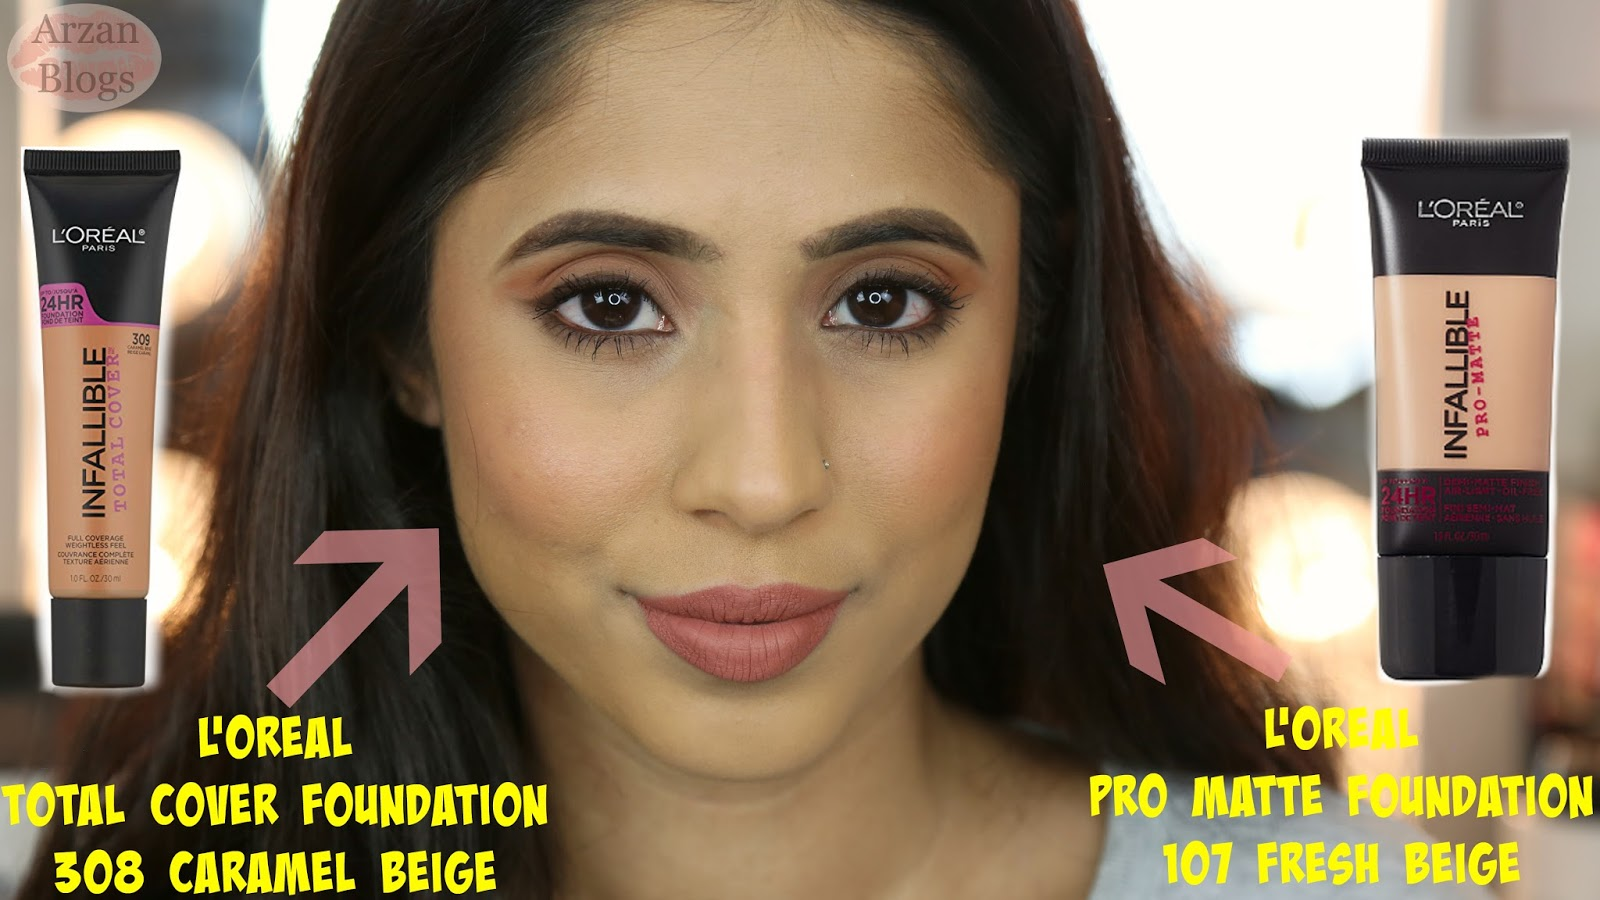 Beauty Loral Infallible Total Cover Foundation Swatches Demo Loreal Pro Matte 24hr Heres How Each Of The Looks Shade 309 Caramel Beige Is Same As 107 Fresh